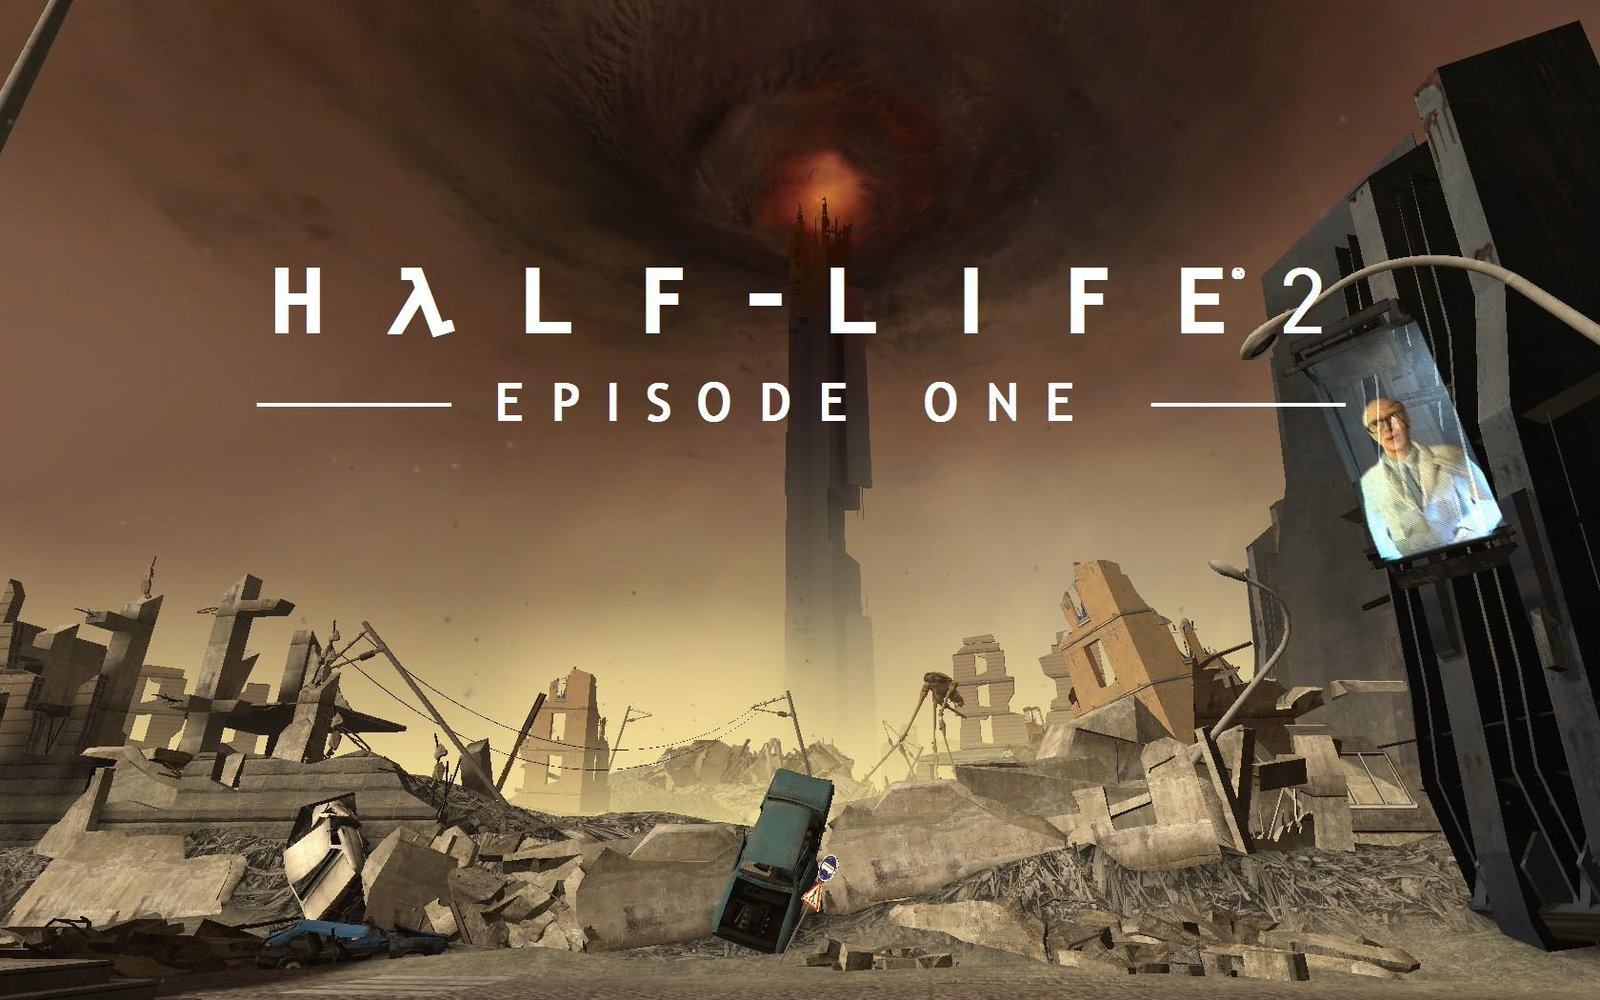 Арт к игре Half-Life 2: Episode One